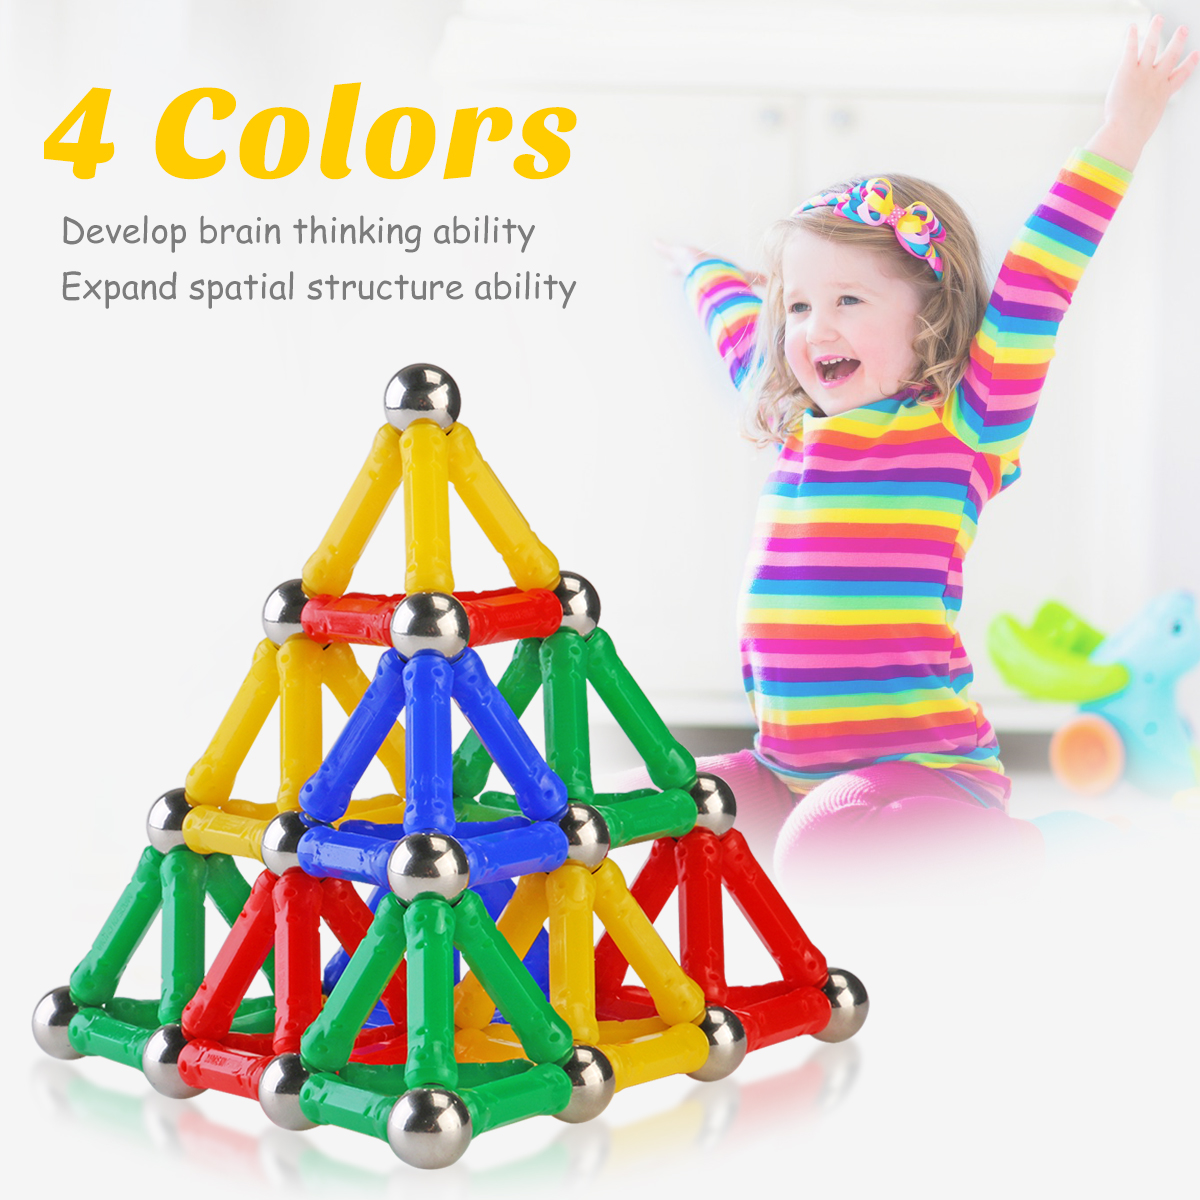 2017 Hot Product Magnetic Toys Sticks Building Blocks Set Kids Educational Toys For Children Magnets Christmas Gift hot sale 1000g dynamic amazing diy educational toys no mess indoor magic play sand children toys mars space sand